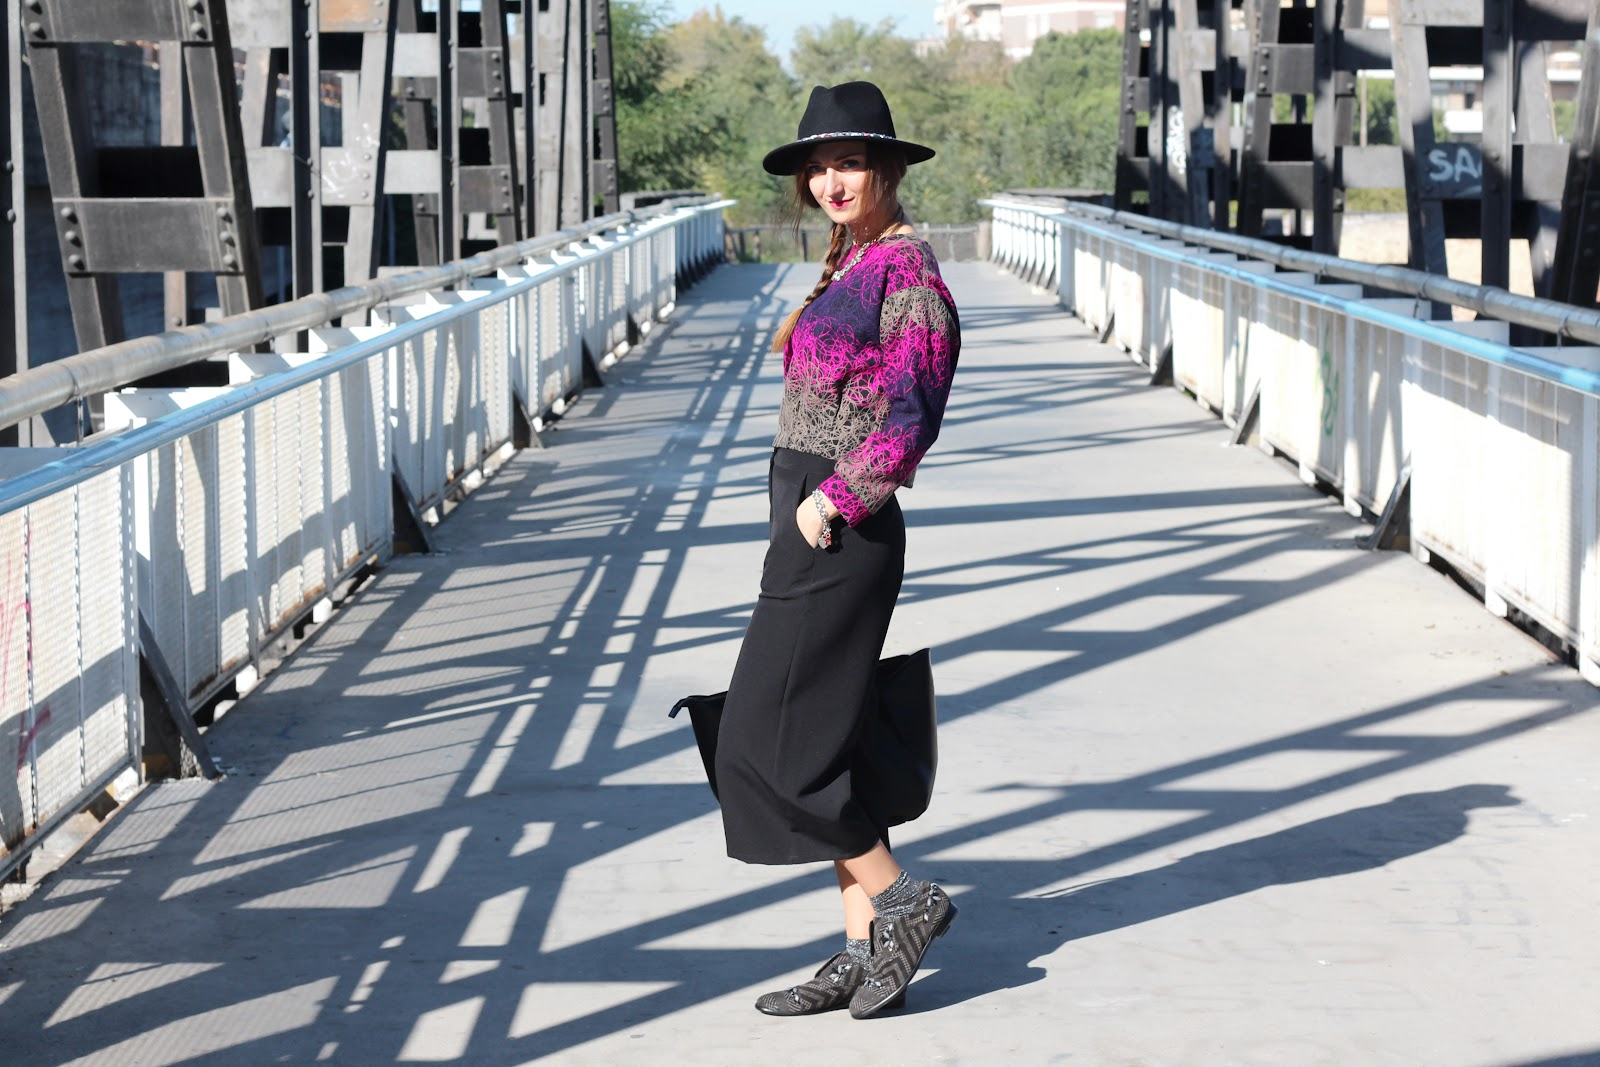 fashion blogger pescara italy italia outfit ootd style vogue fratelli rossetti shoes scarpe derby dandy goa goa happiness boutique zara bag borsa nera black hat